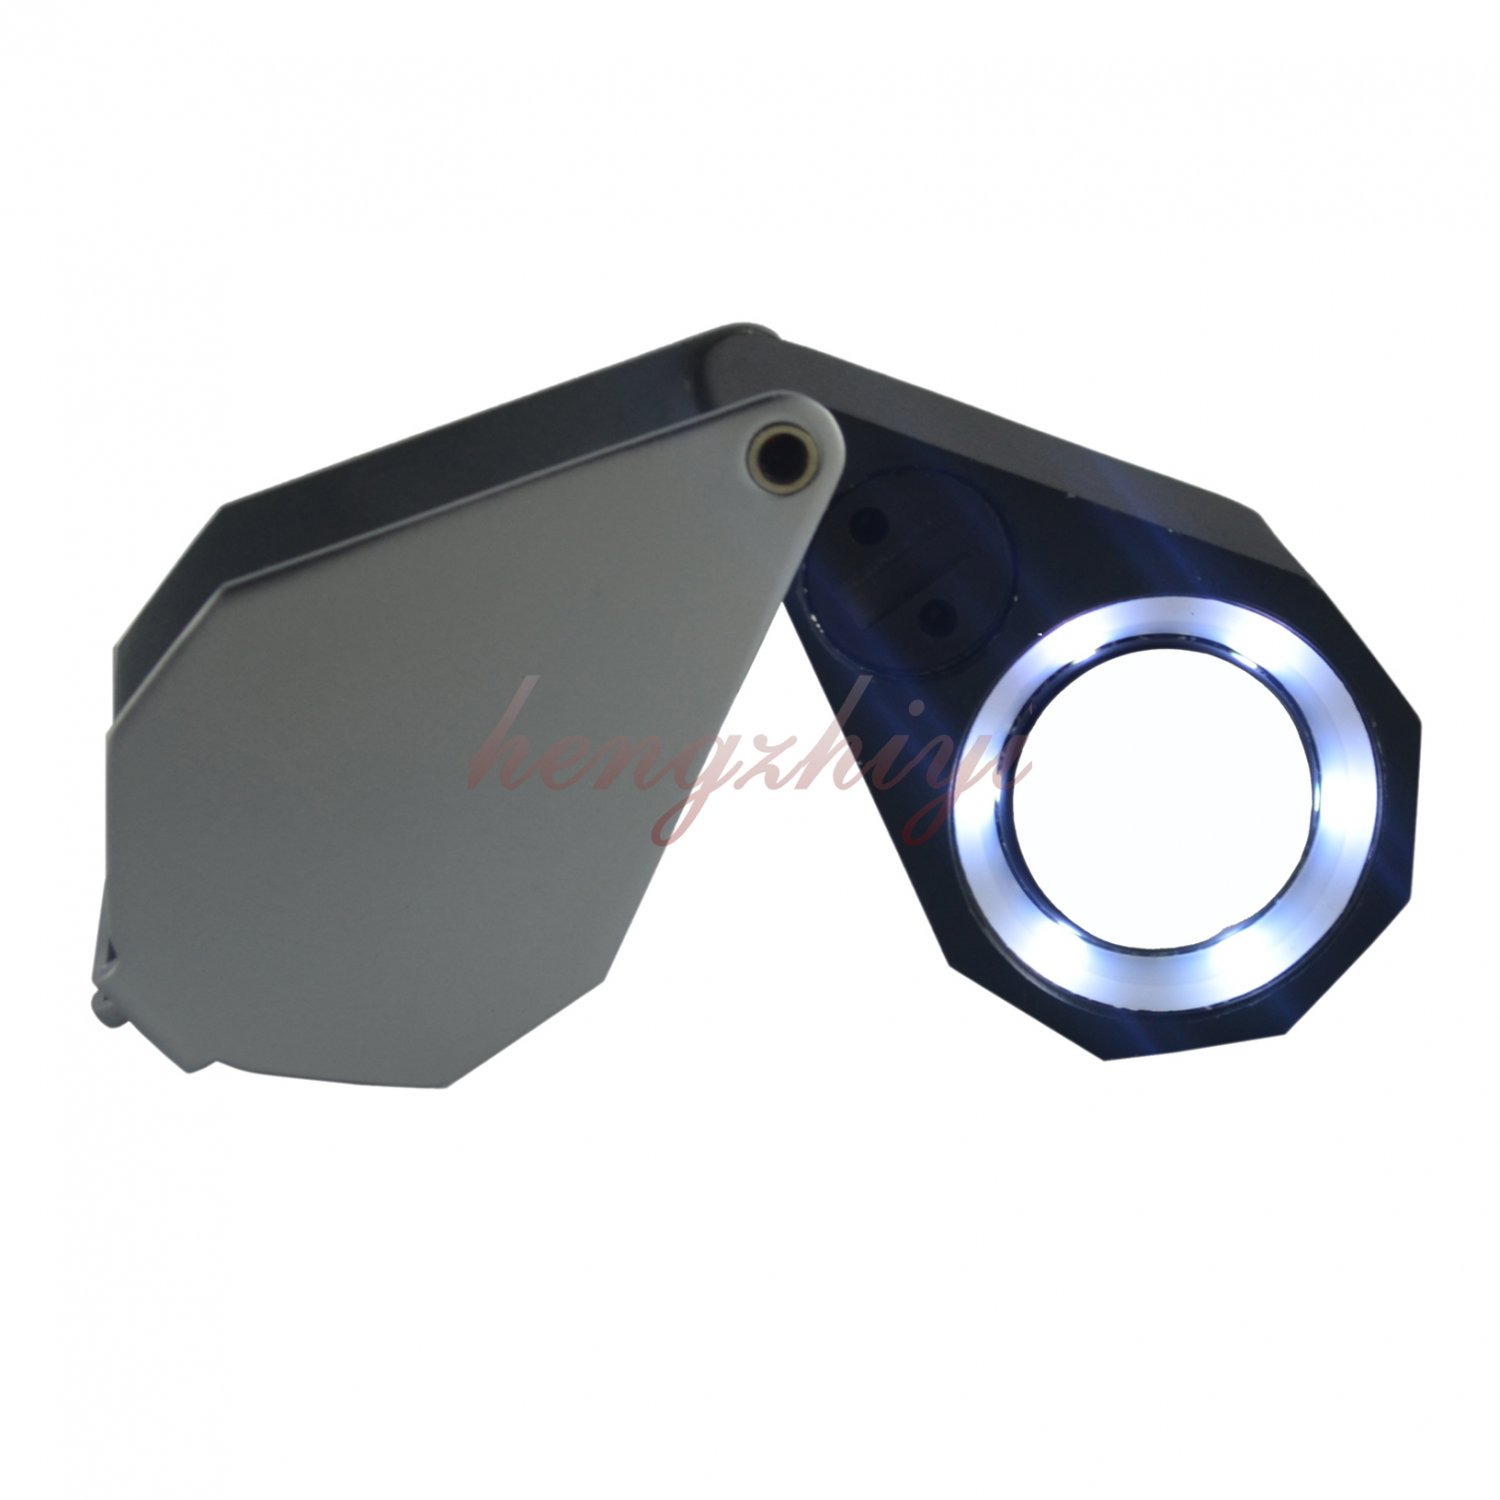 10X 21mm Jewellery Diamond Triplet Loupe Magnifier Lens w 6 LED Lights + Leather Case, Free Shipping